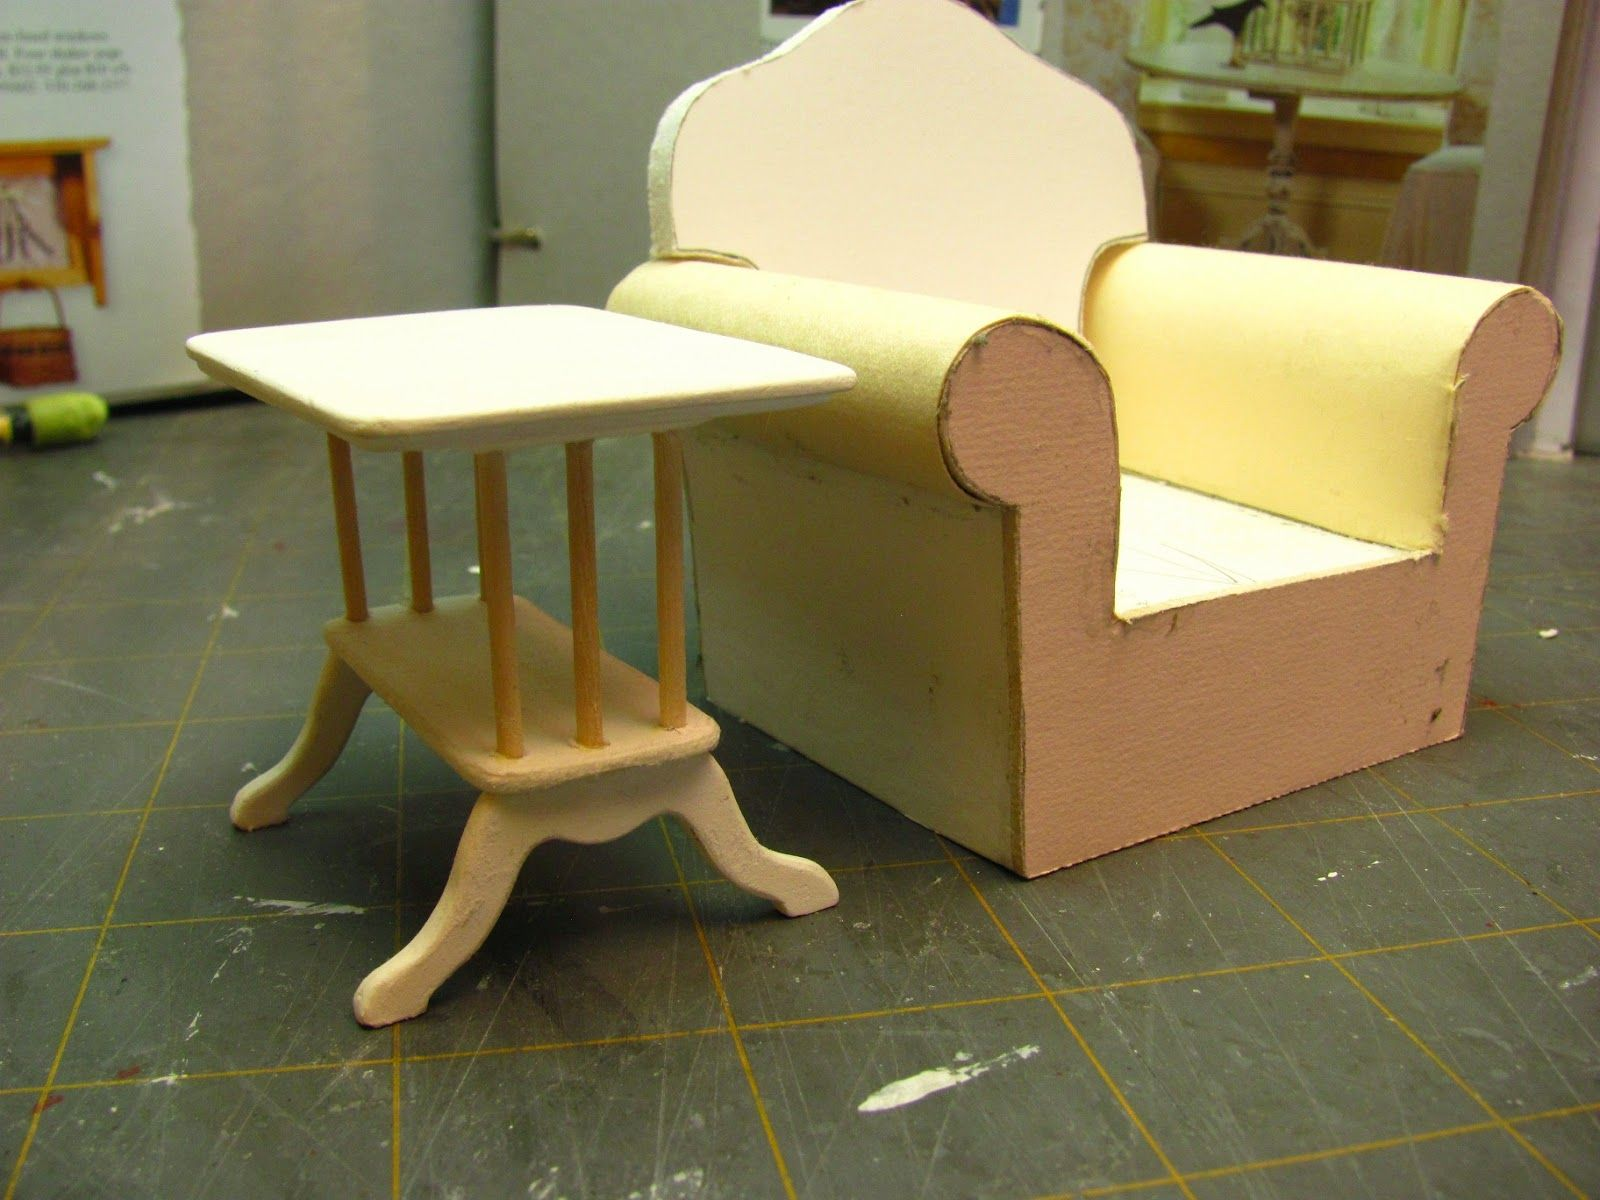 how to build miniature furniture. Learn How To Make Miniature Dollhouse Furniture, Mini Paper Accessories And Get Techniques, Tips Monthly Tutorials. Build Furniture